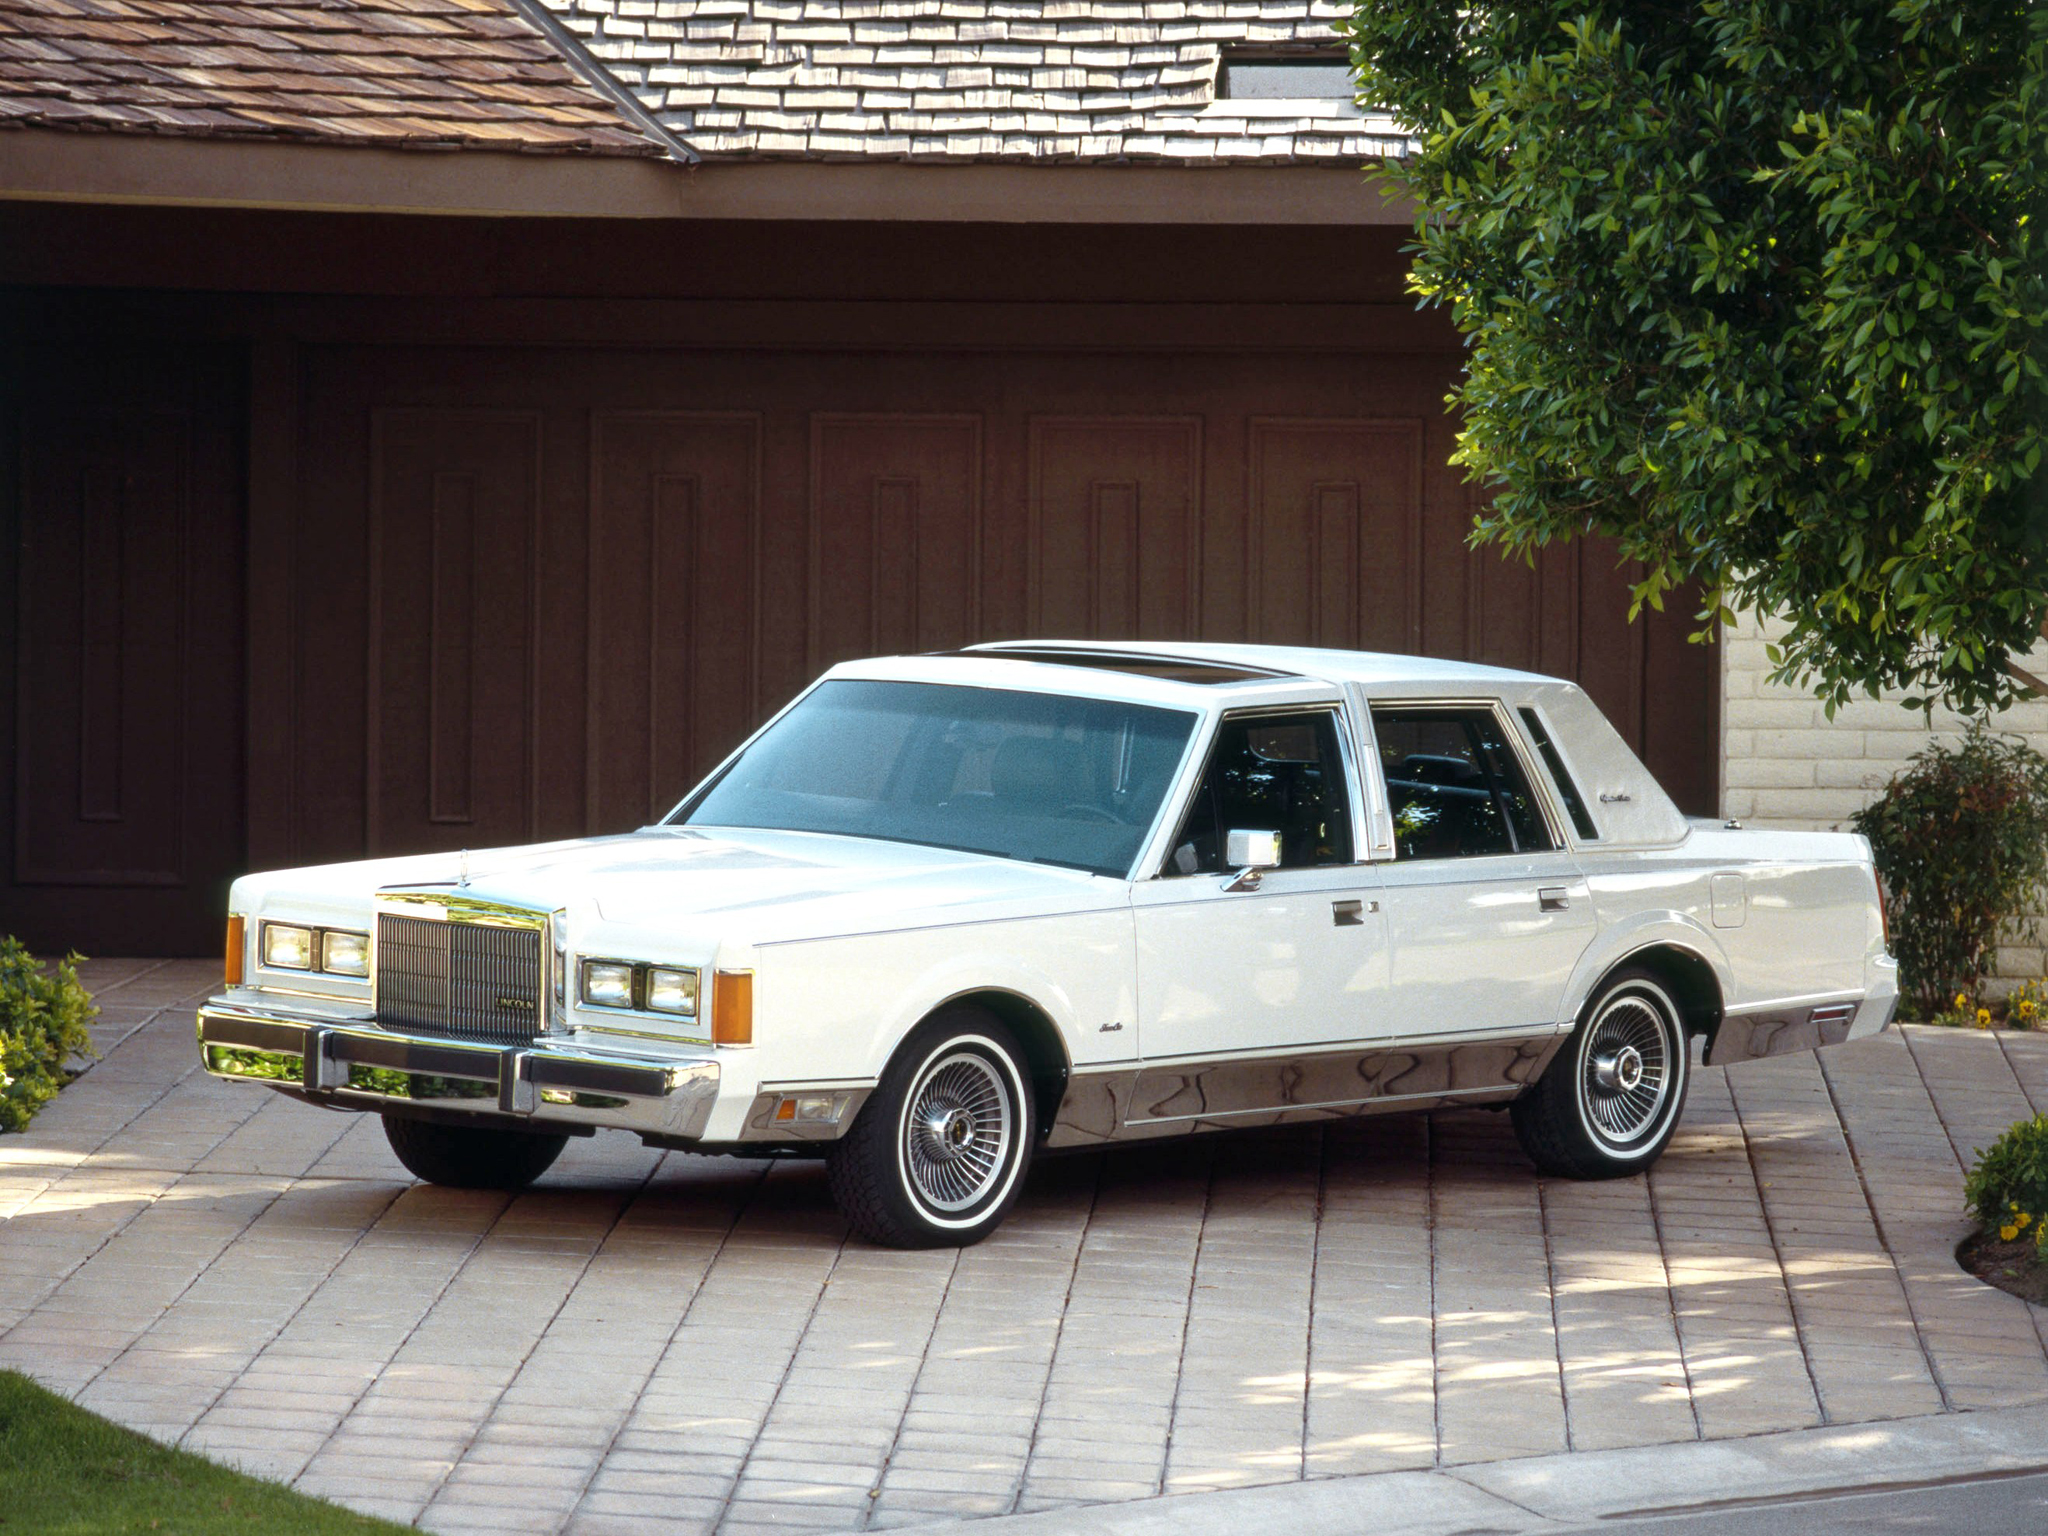 1985 Lincoln Town Car Luxury Classic Wallpaper 2048x1536 116111 Wallpaperup